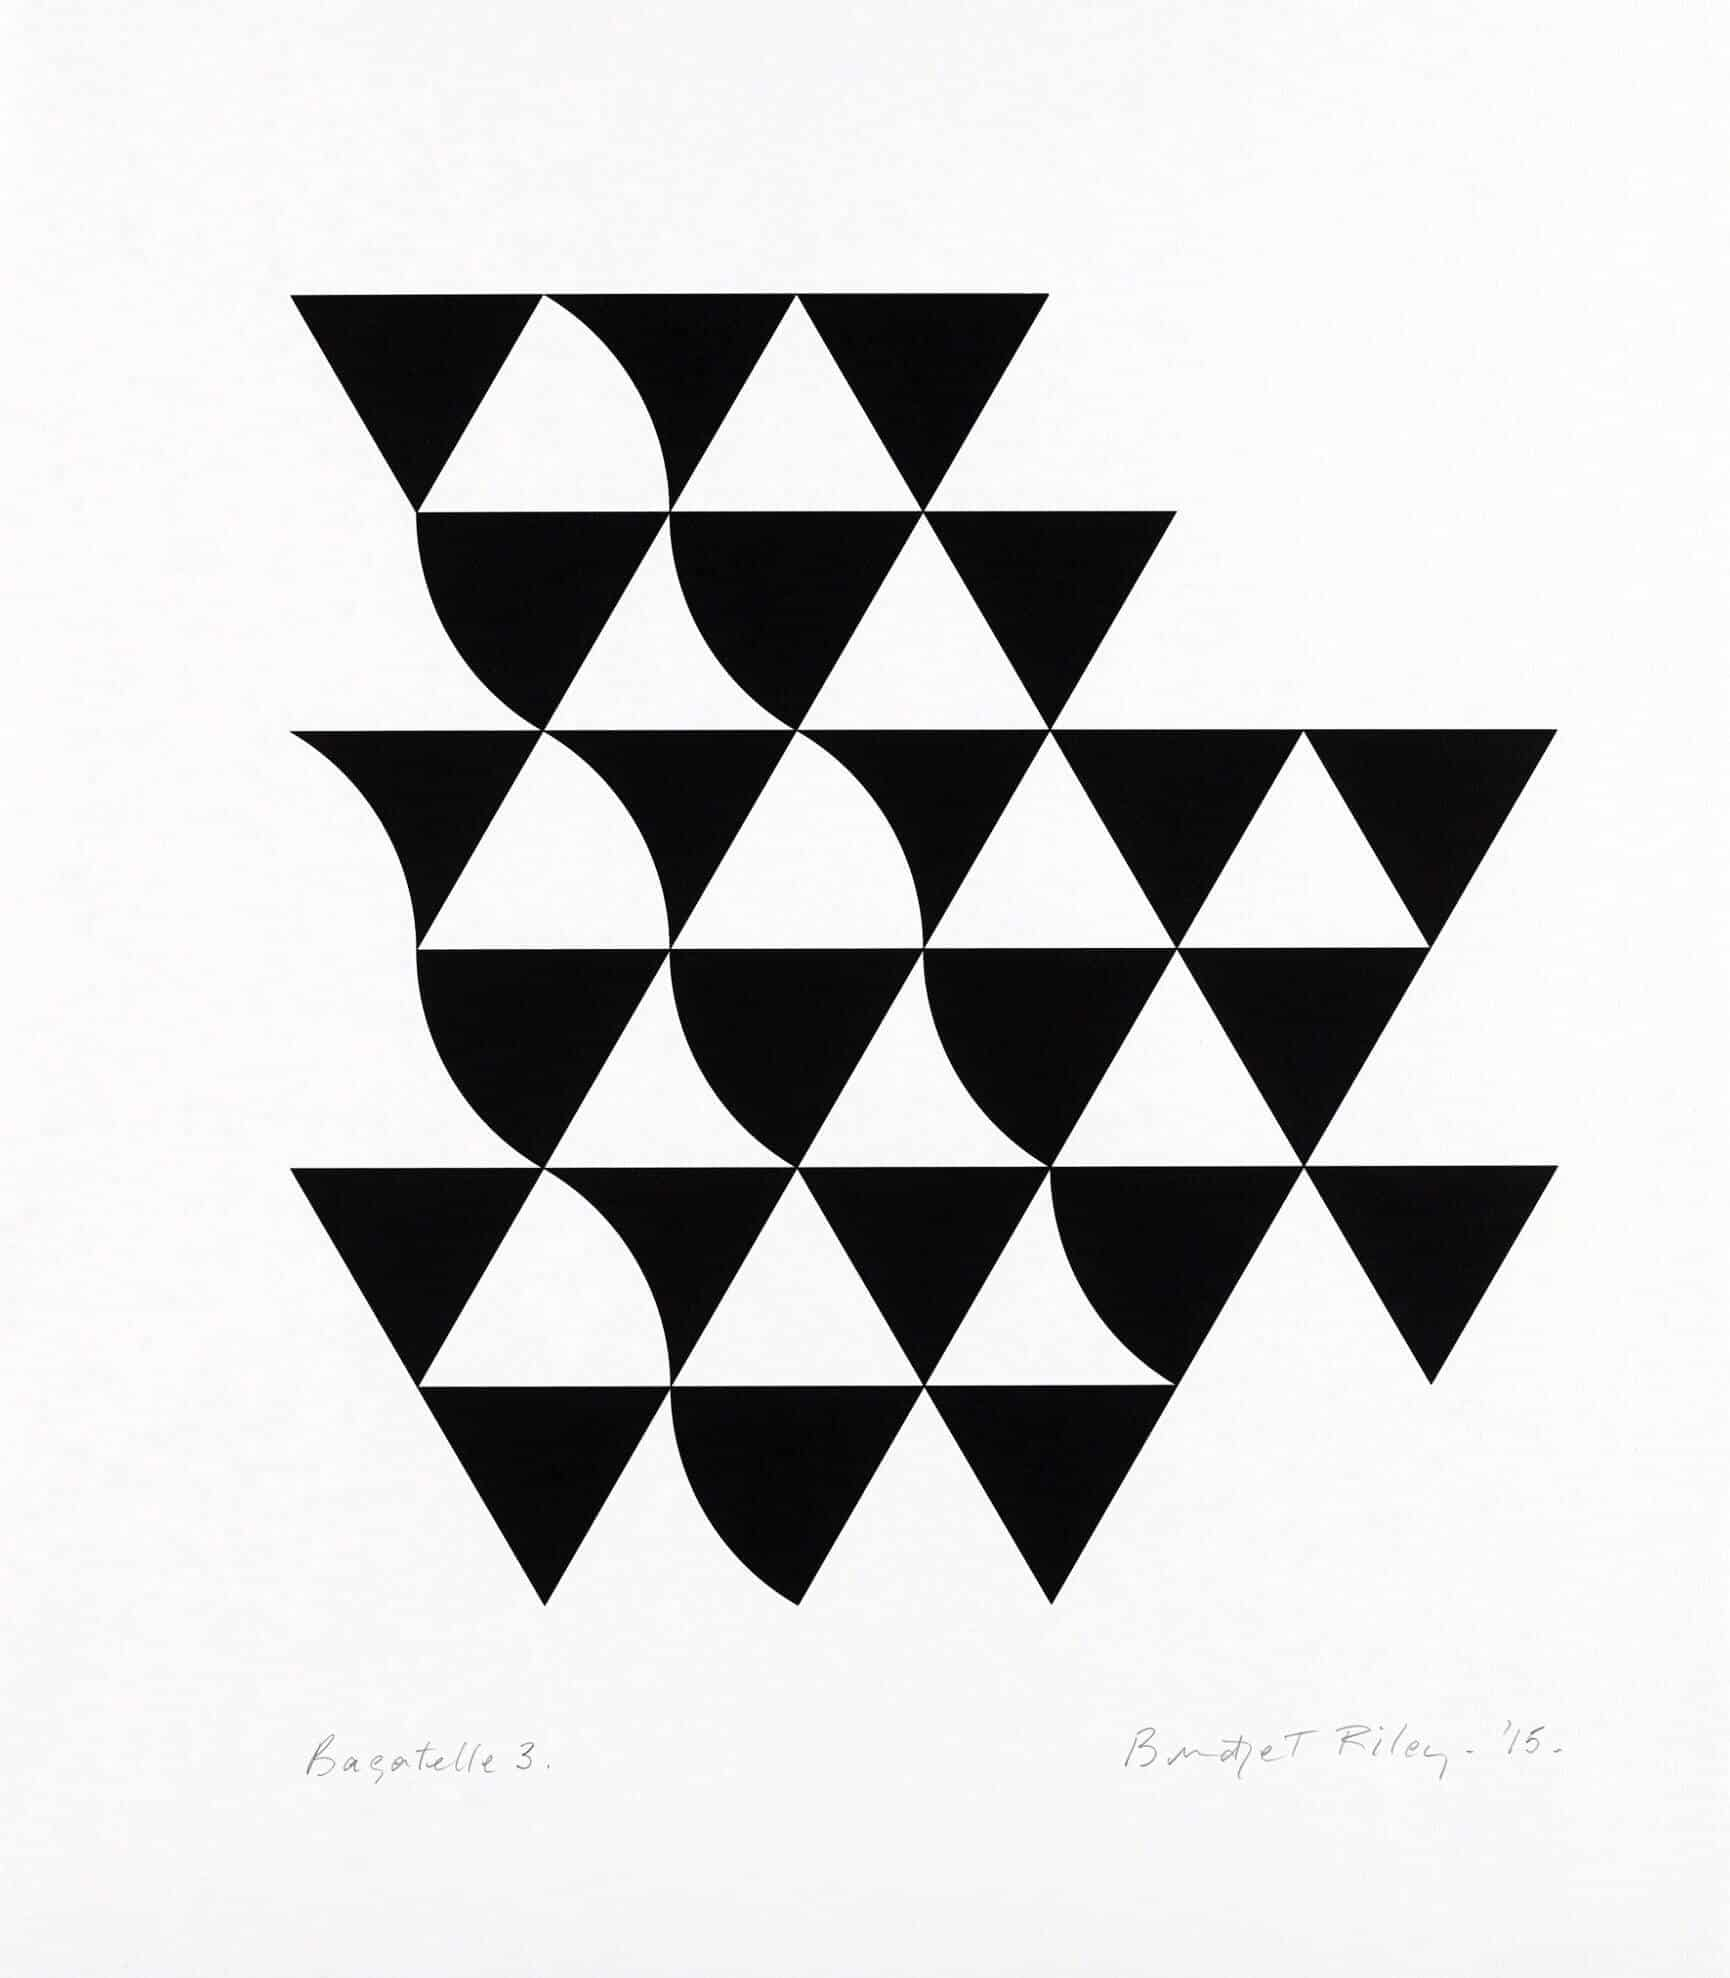 bridget riley bagatelle sold at zebra one gallery